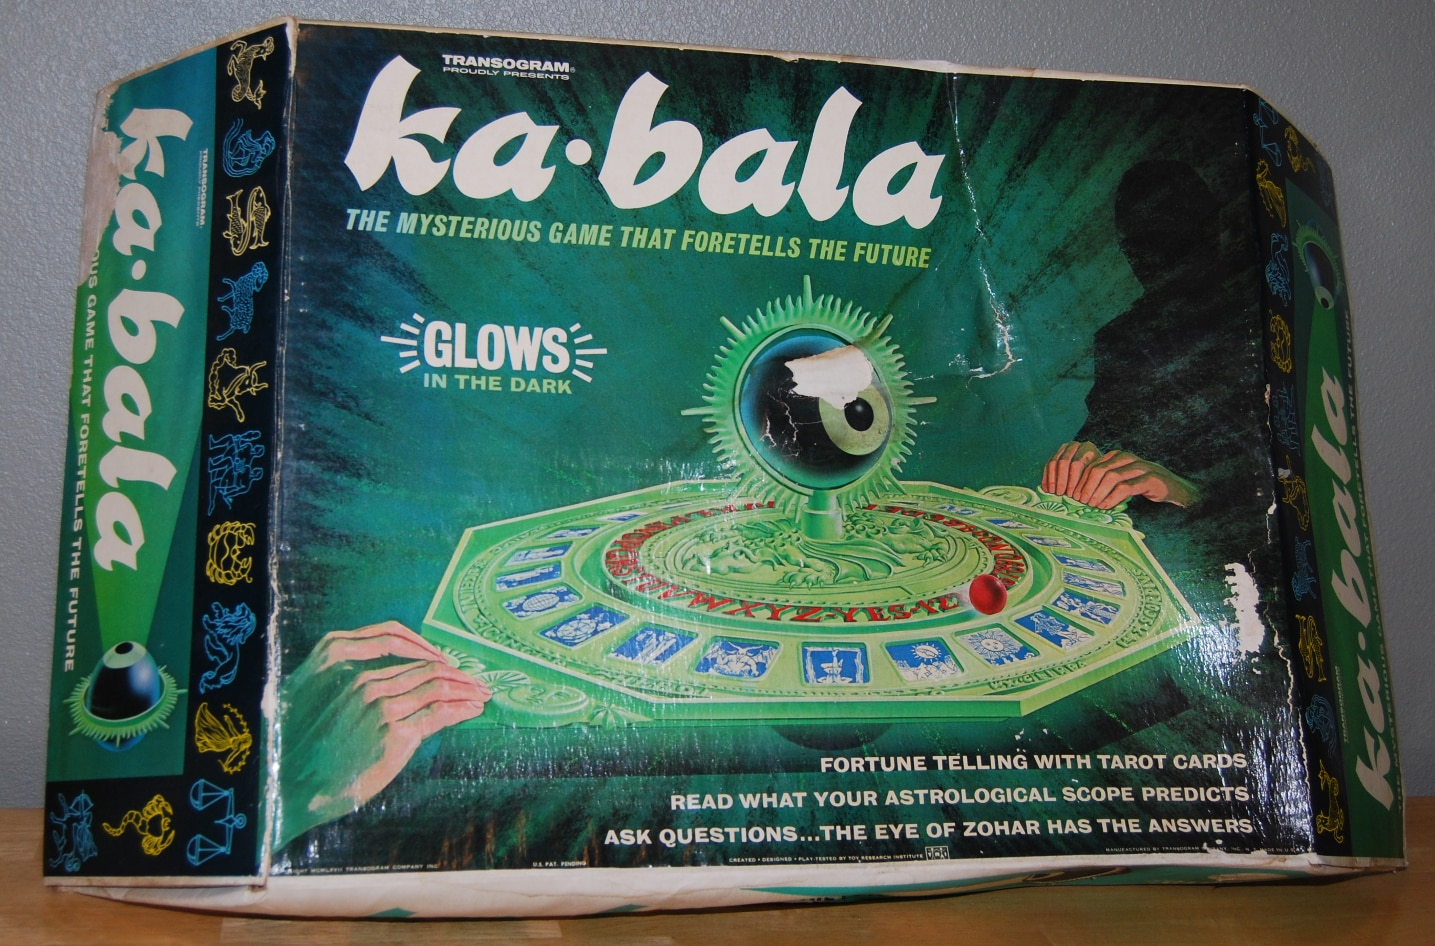 vintage toy kabala 1 - Vintage Toy Finder ALERT! If You Collect This Is a MUST-READ!